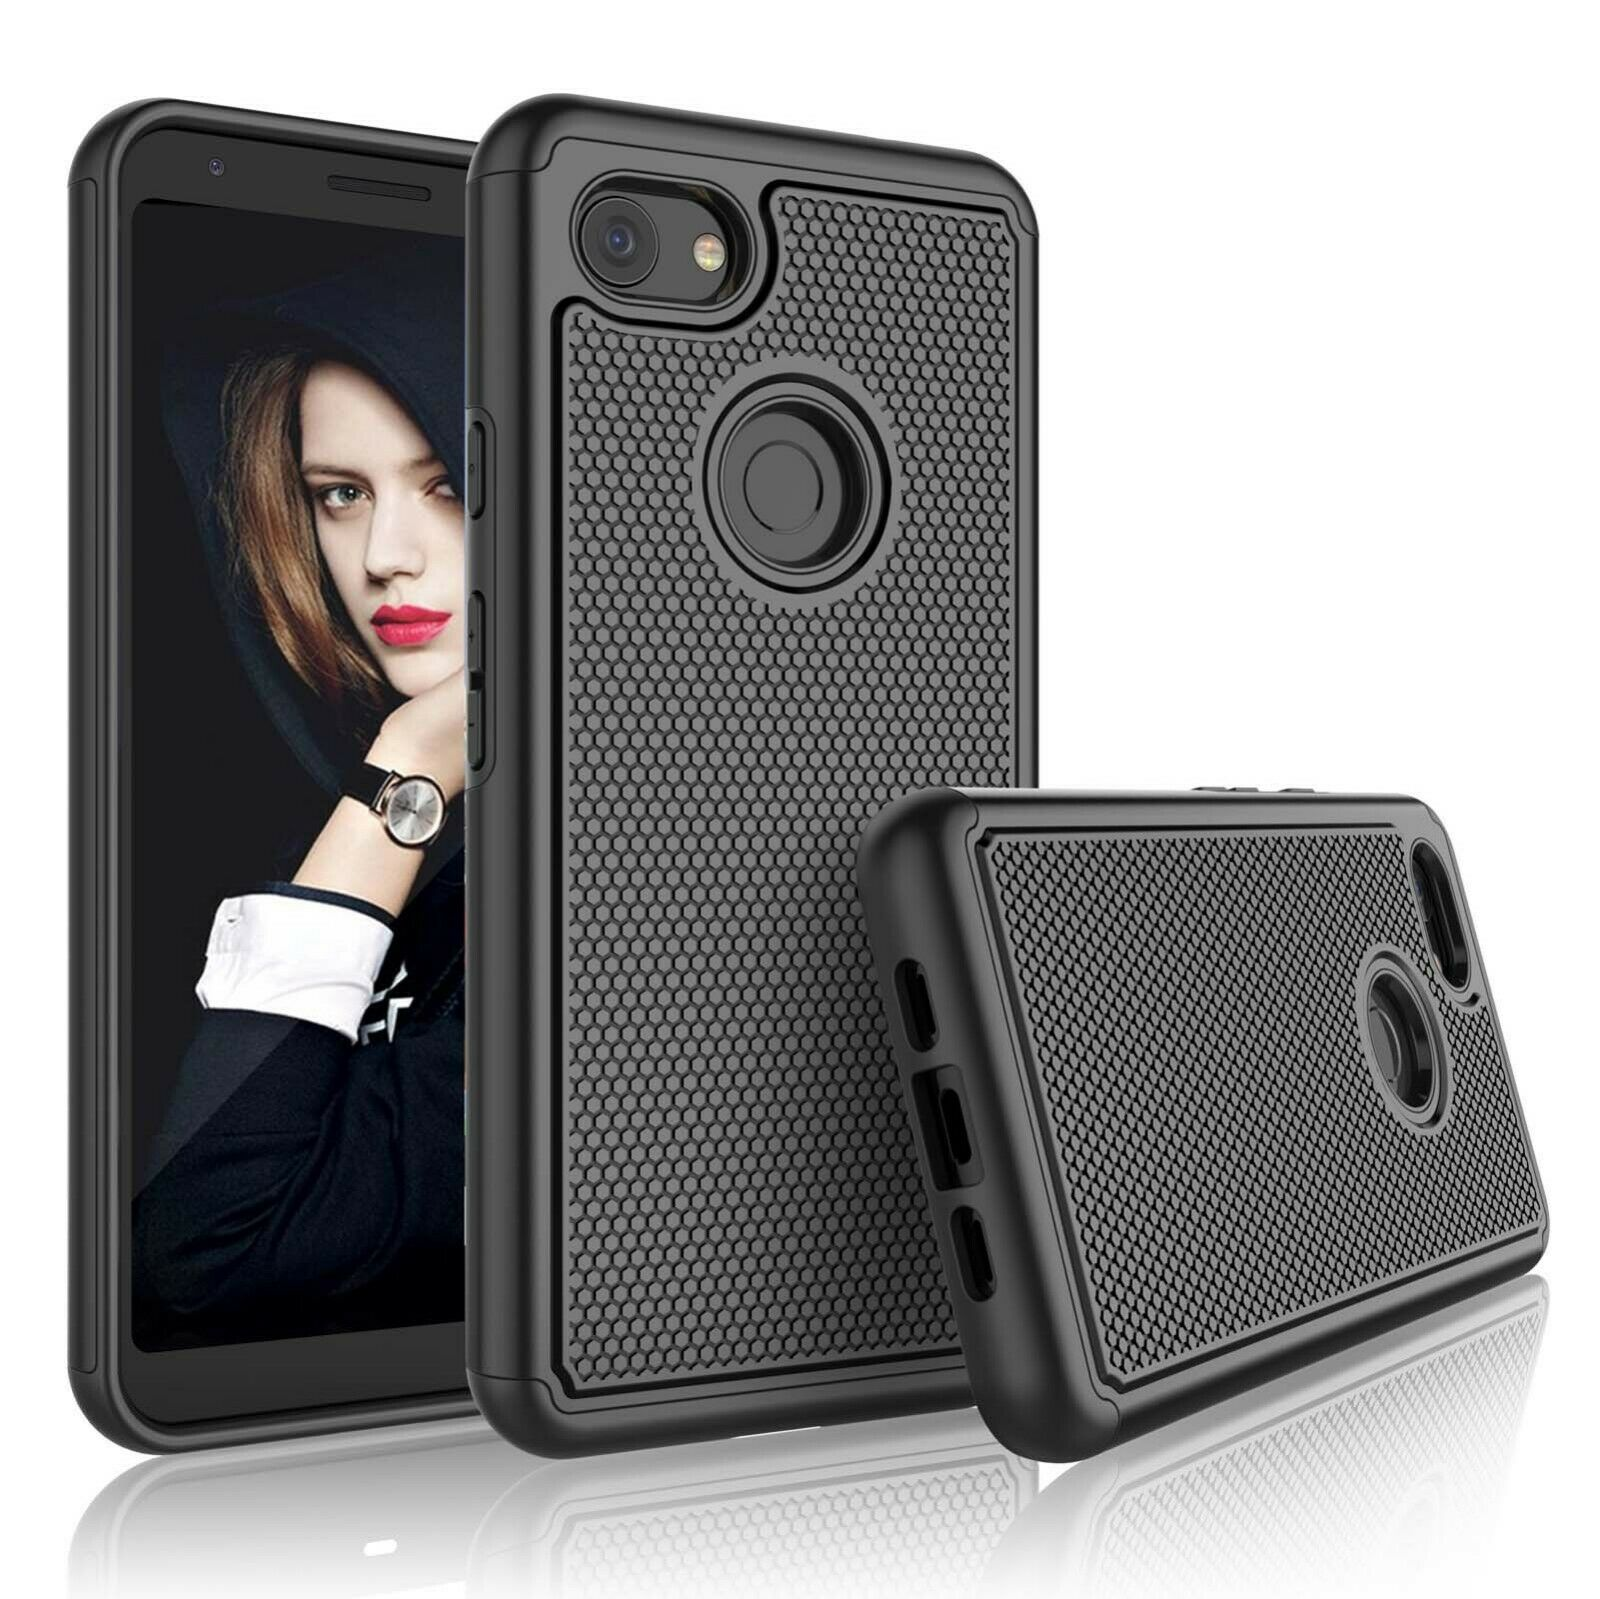 For Google Pixel 2 XL 3 XL 3a XL Phone Case Shockproof Rubber Protective Cover Cases, Covers & Skins